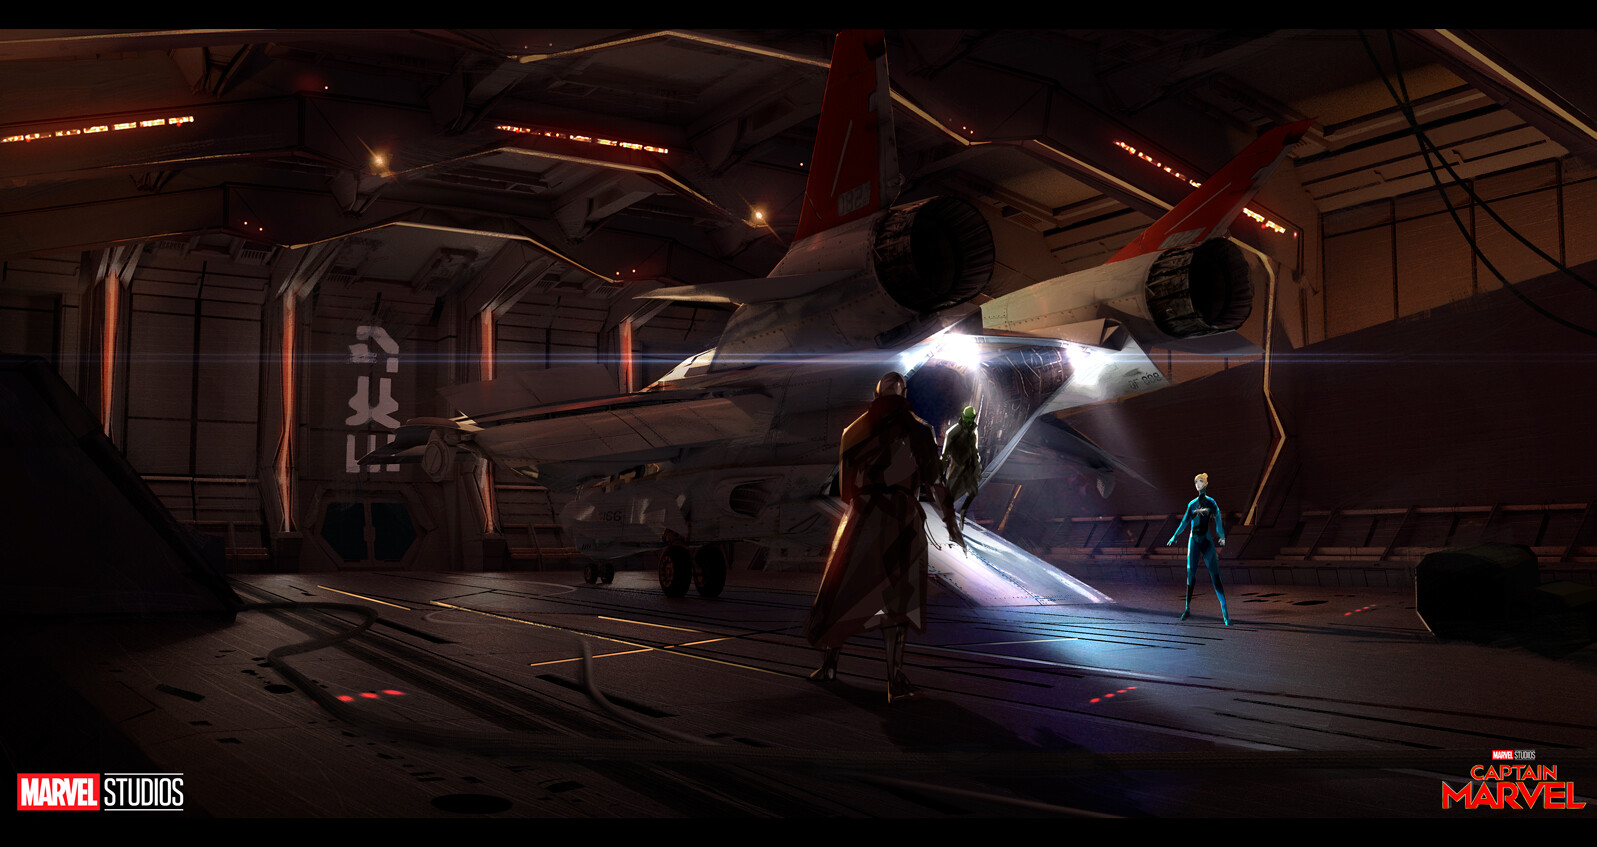 Pablo carpio captainmarvel marvelinterior keyframe2 pc